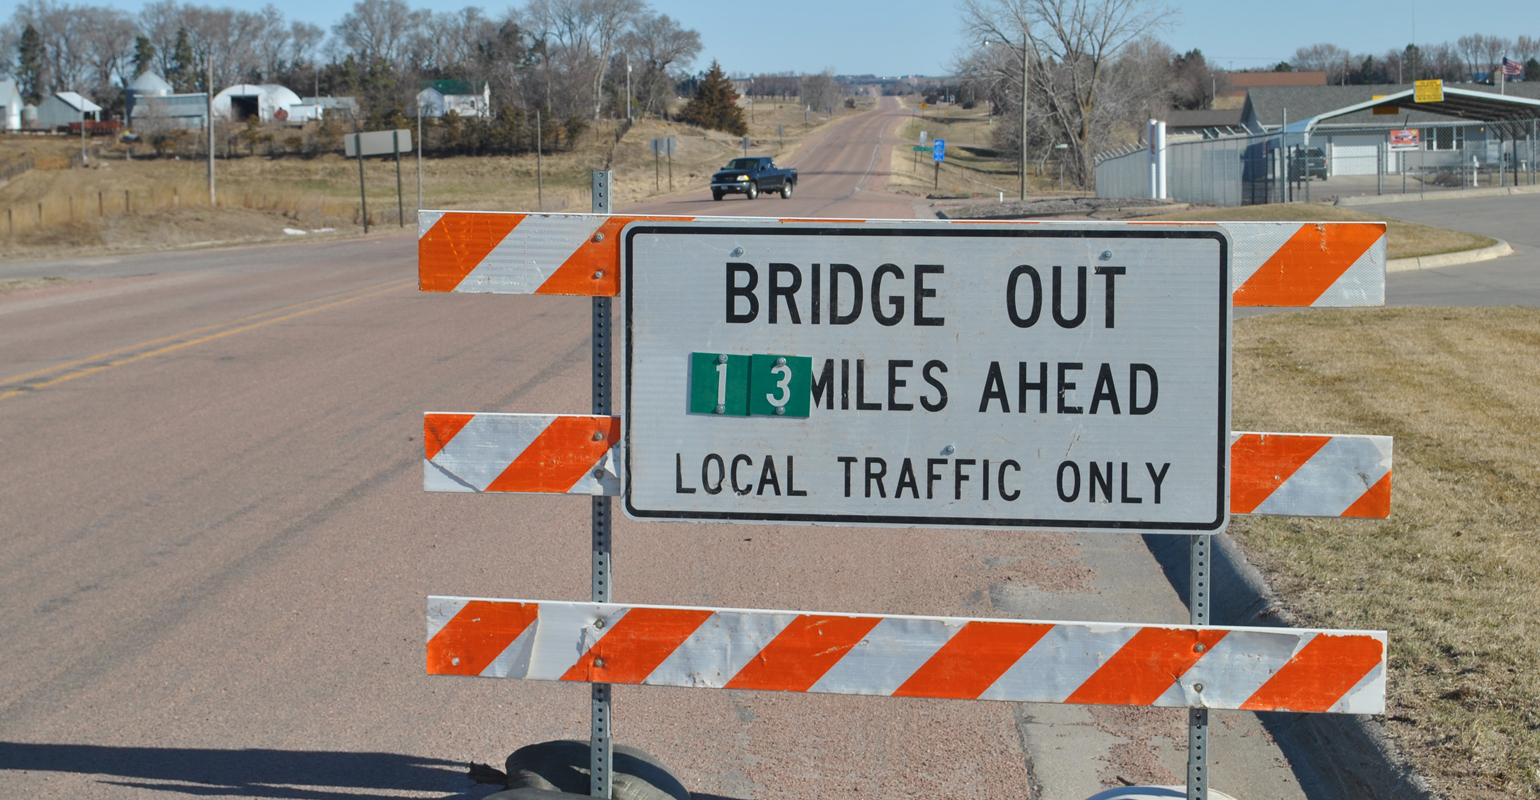 Bridge out 13 miles ahead sign